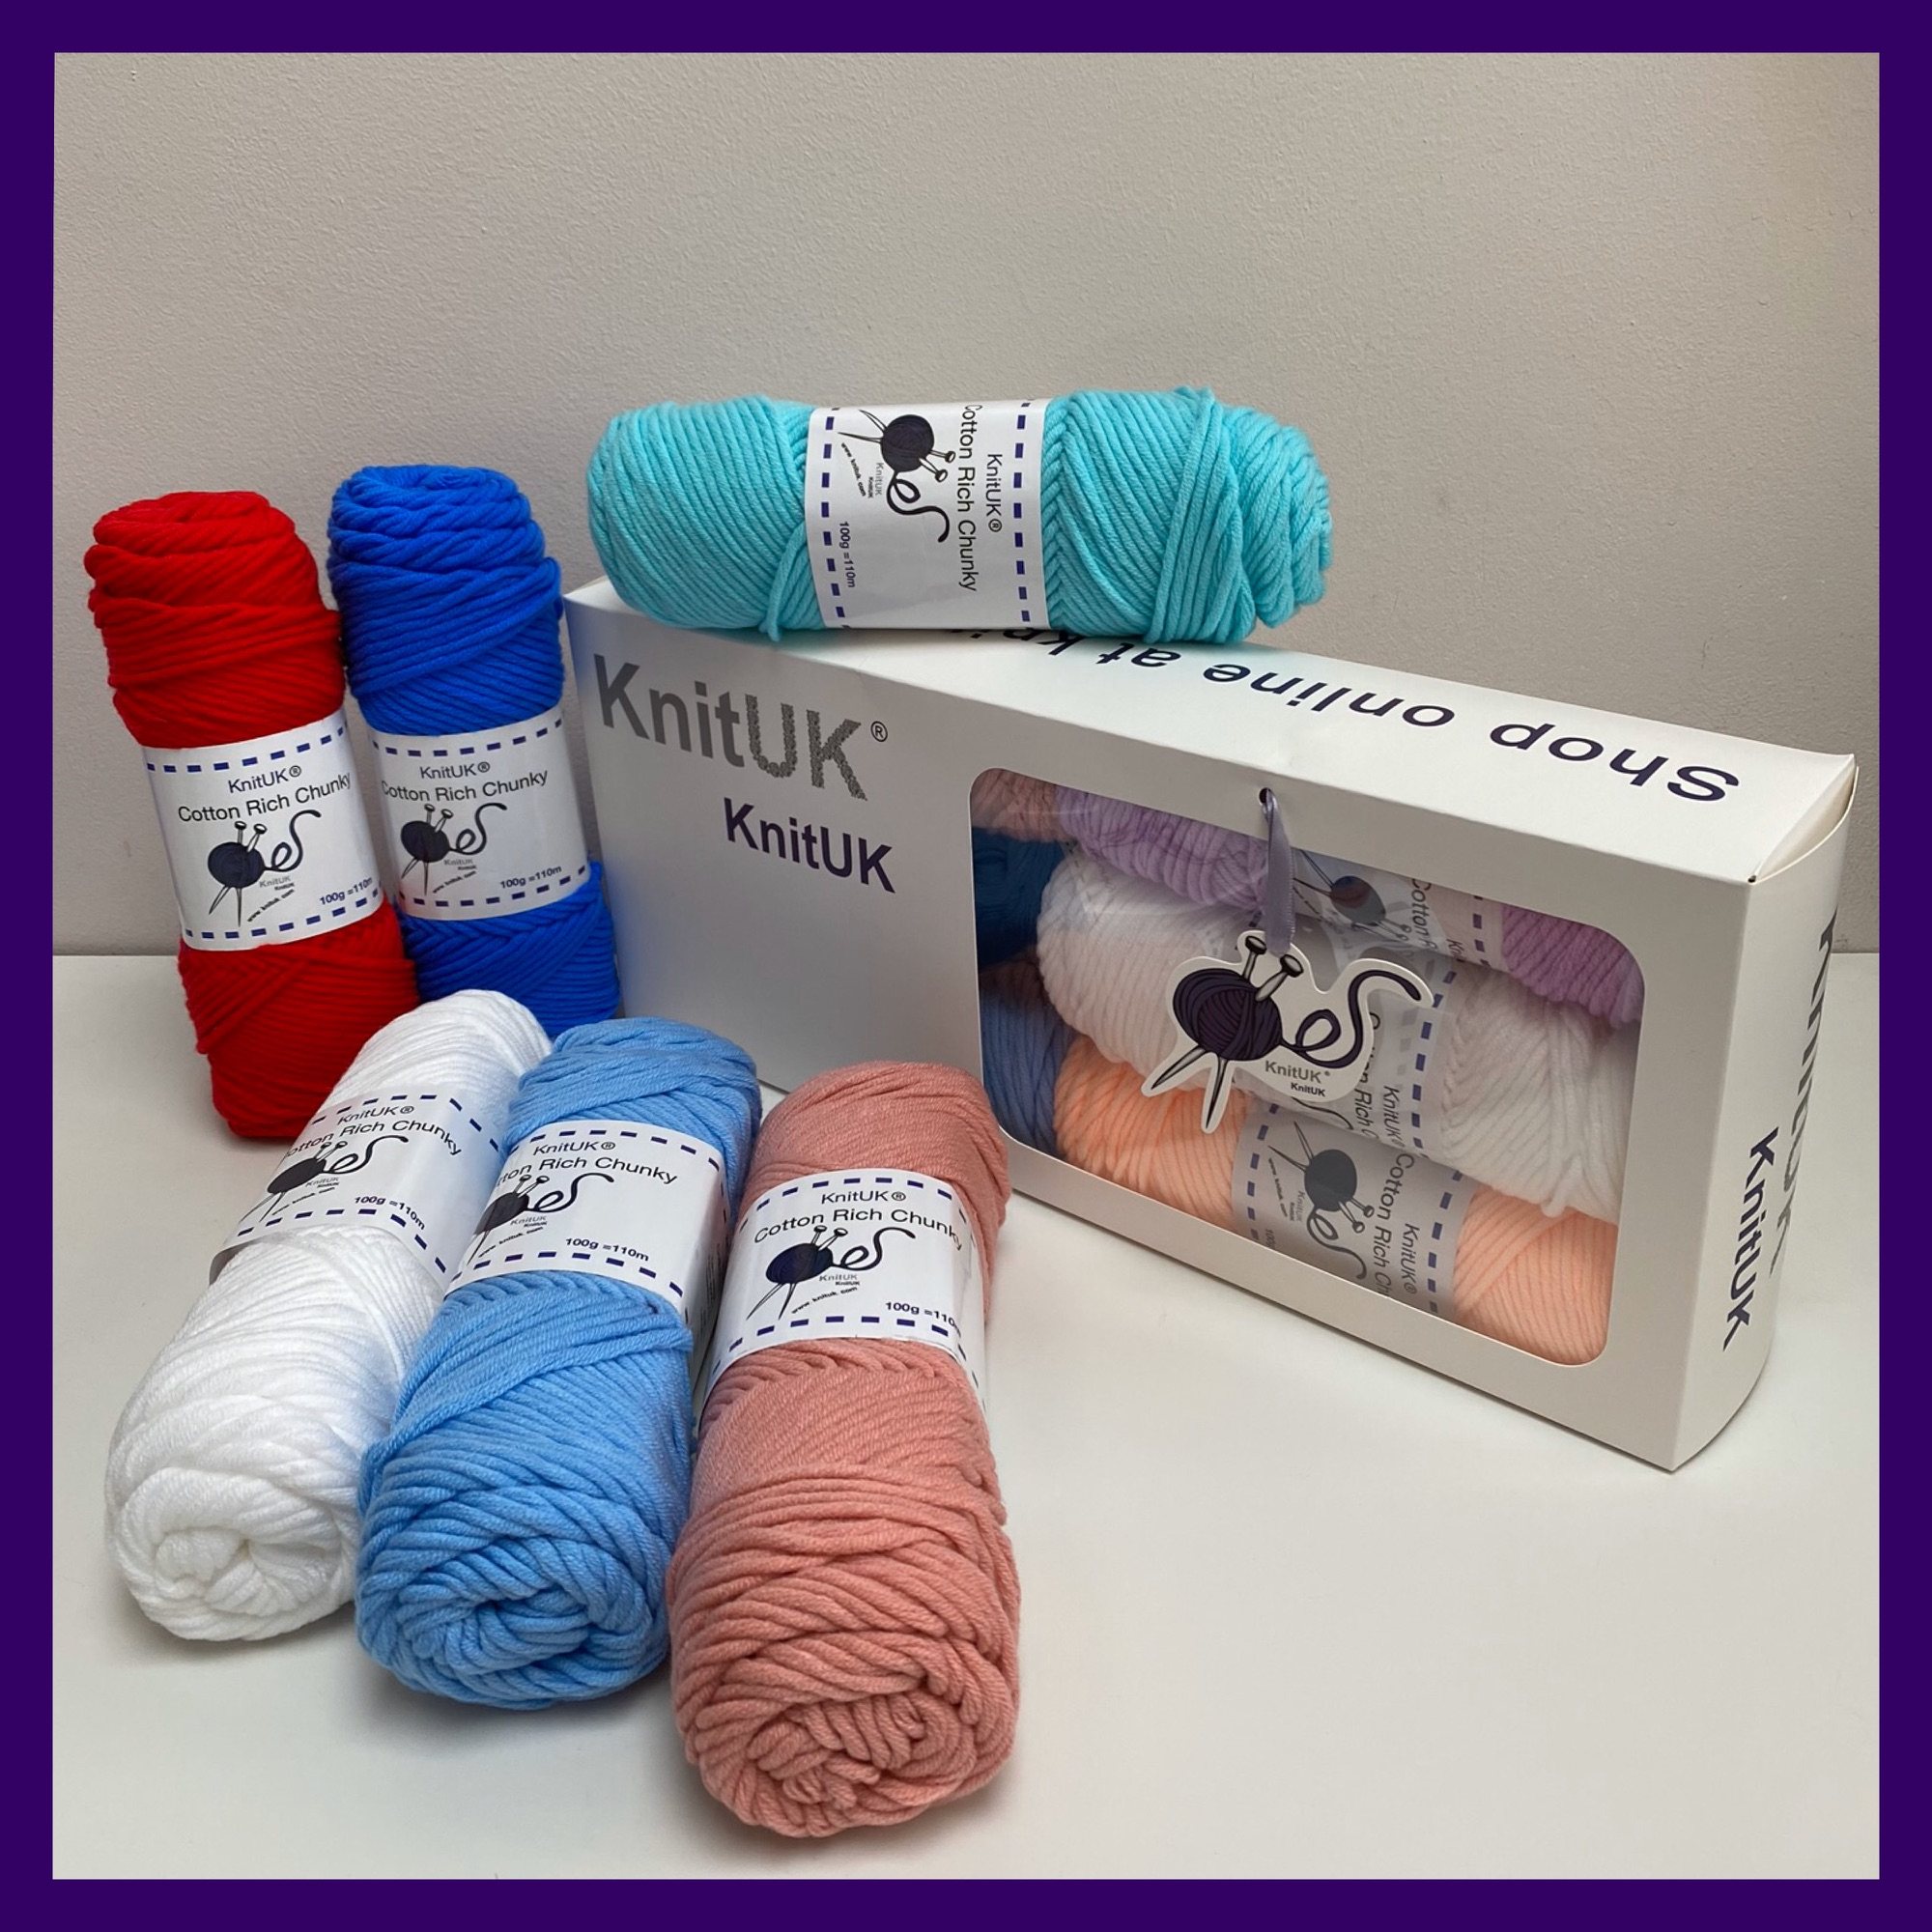 knituk cotton rich chunky knitting loom crochet yarn